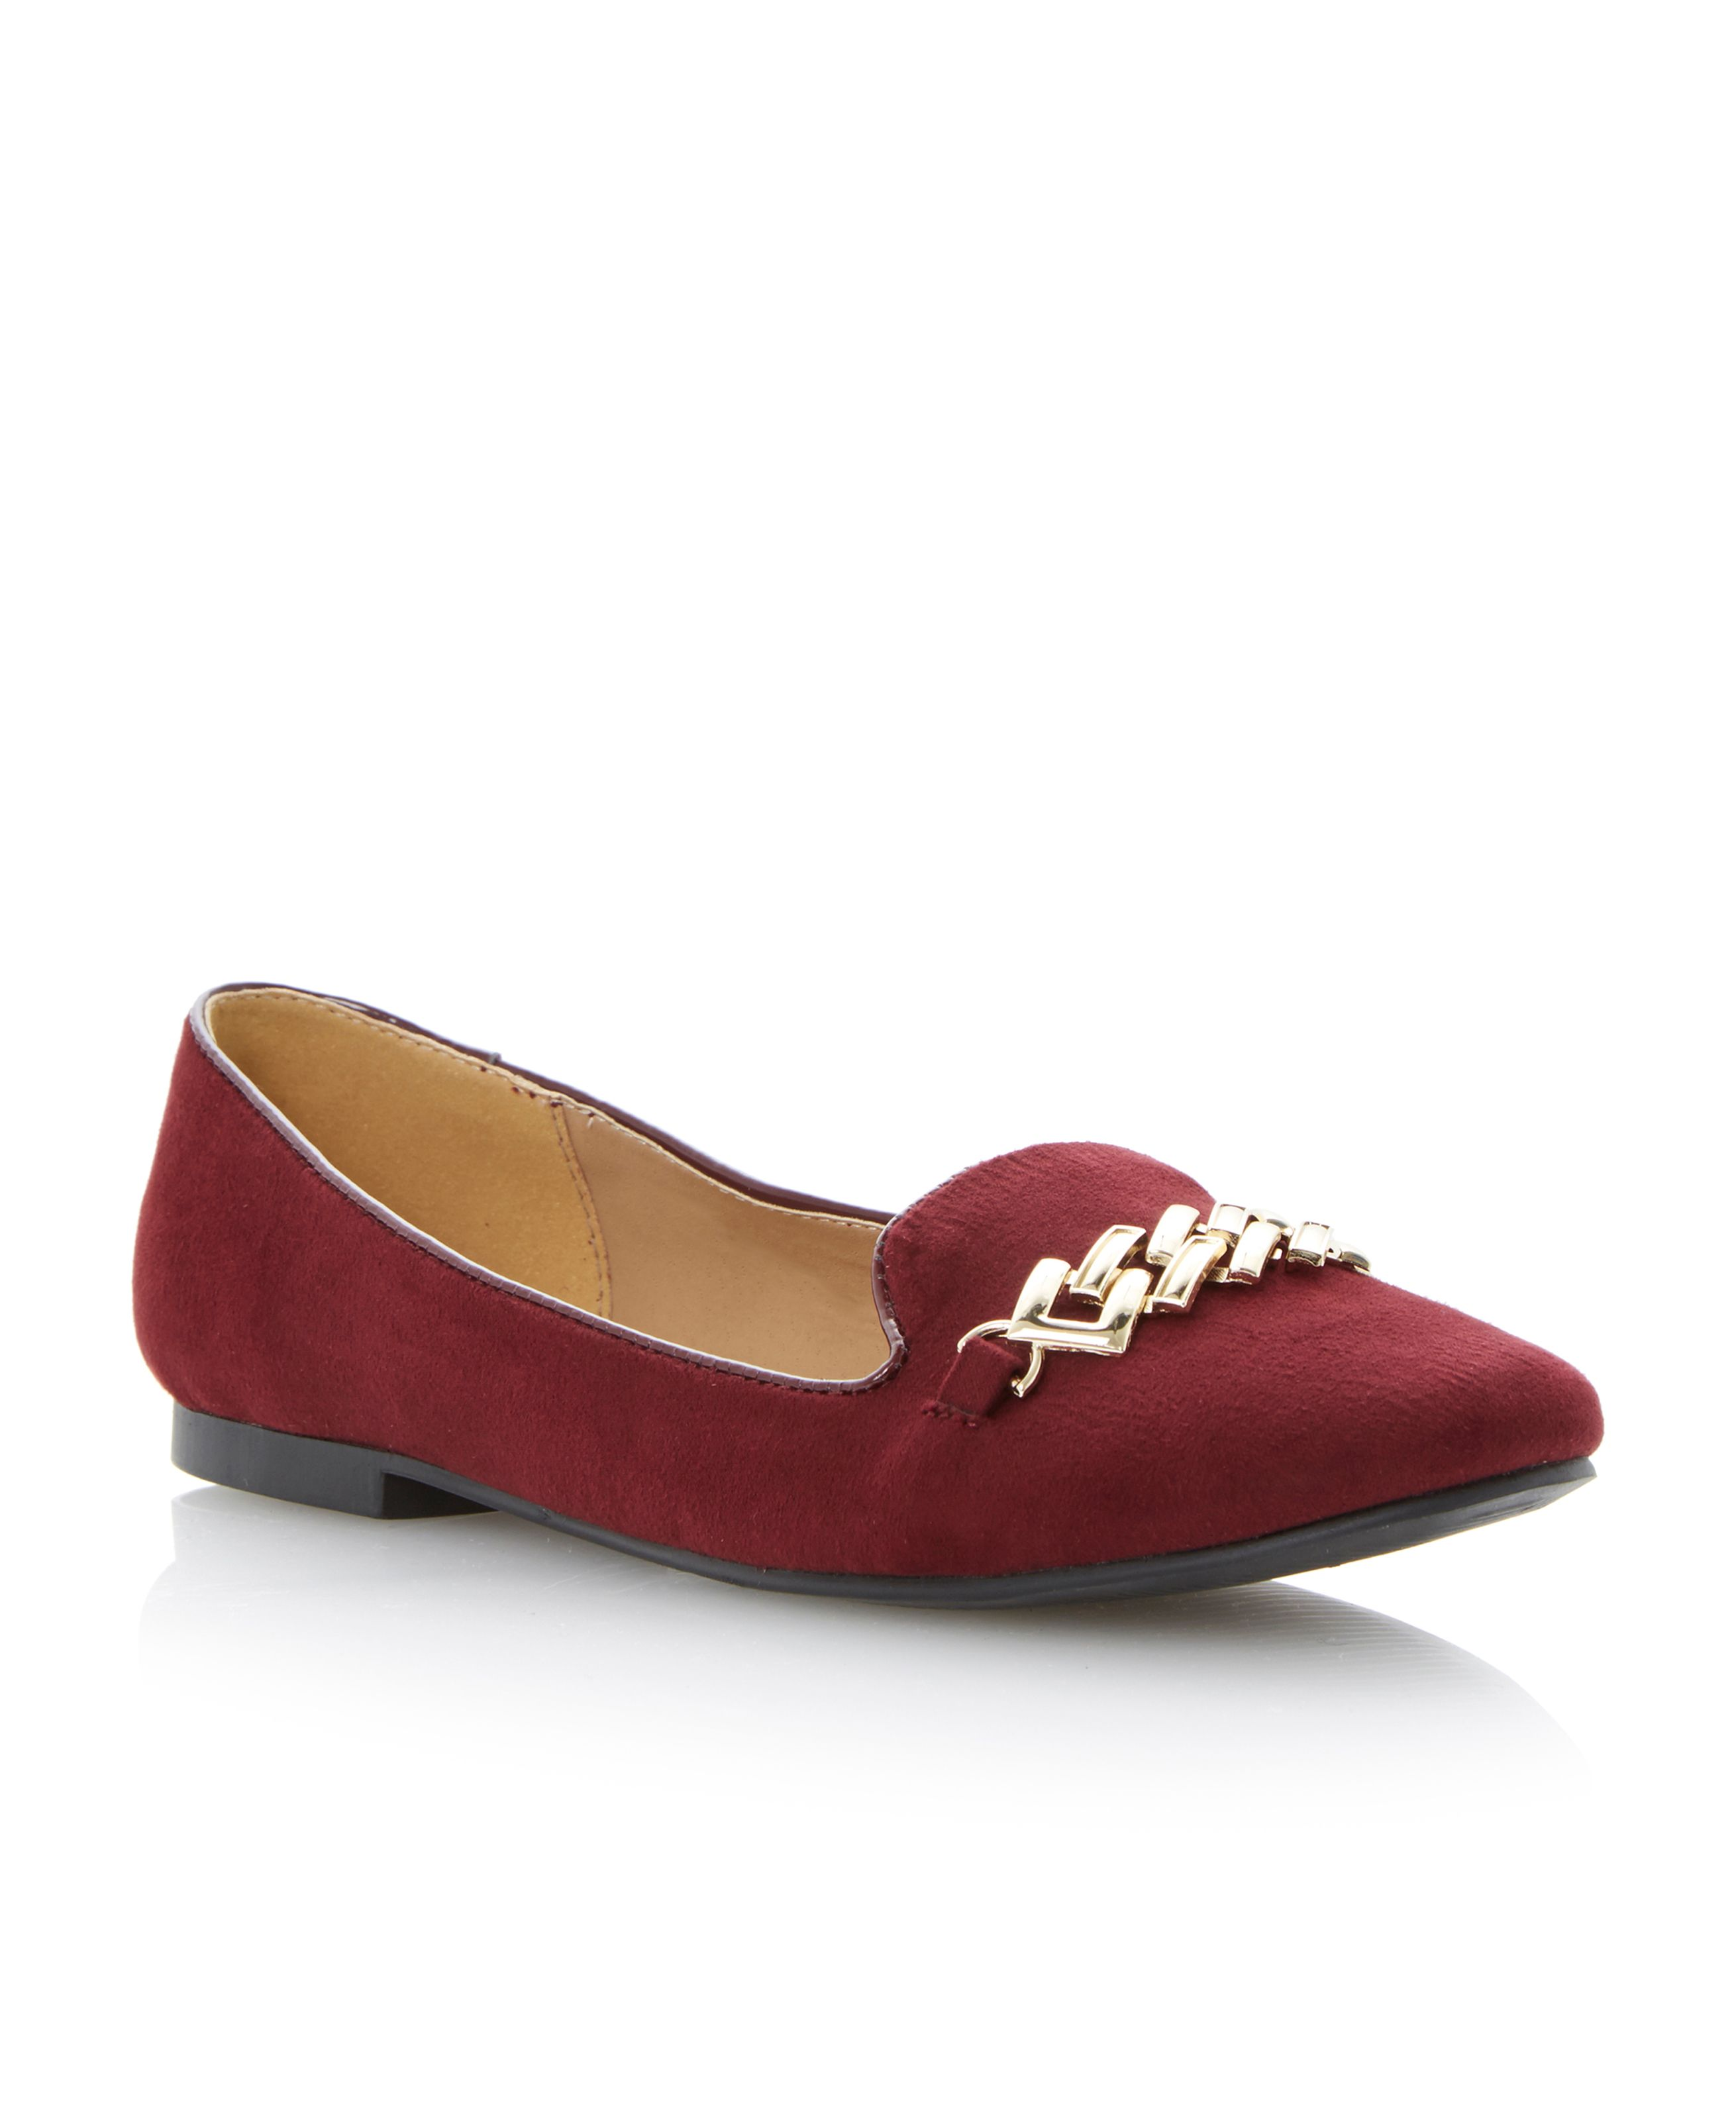 Latica metal trim slipper loafers